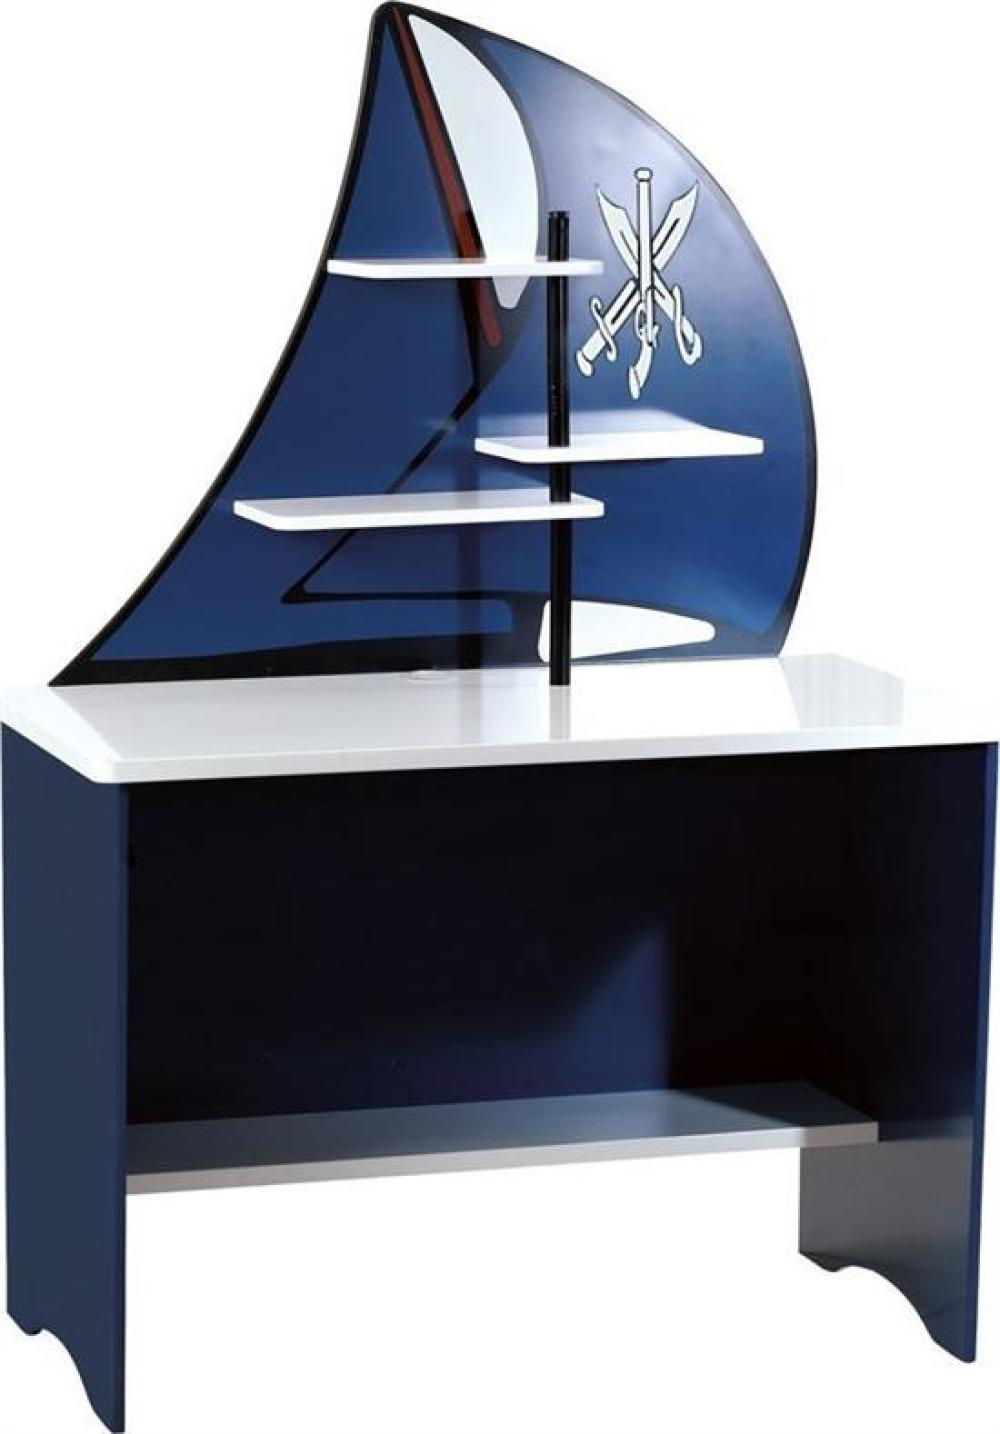 A Pirate Sail Desk (RRP$499), Includes 3 shelves for extra storage Size: 156h x 107w x 60d cm MDF, Ages 4+ Years, Comes in two boxes